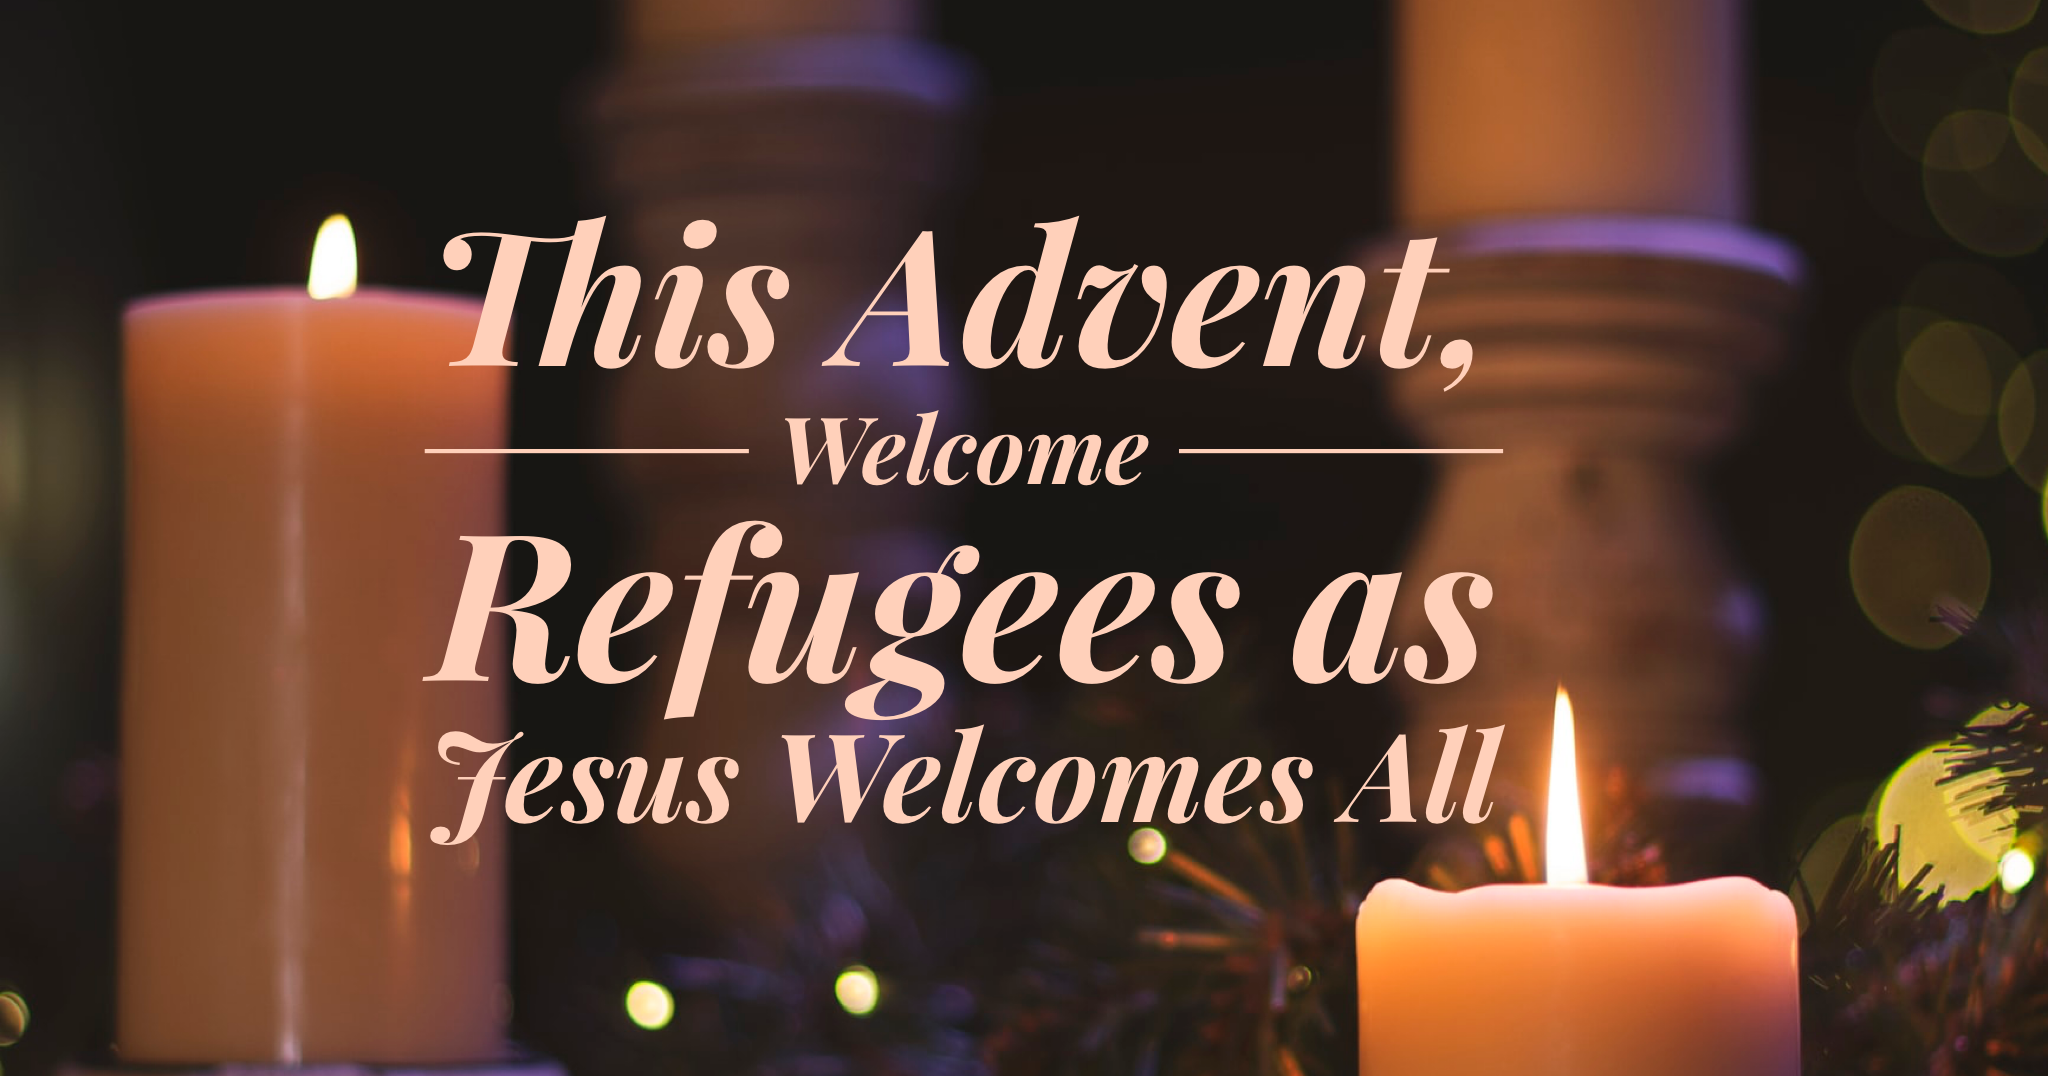 Welcome Refugees this Advent